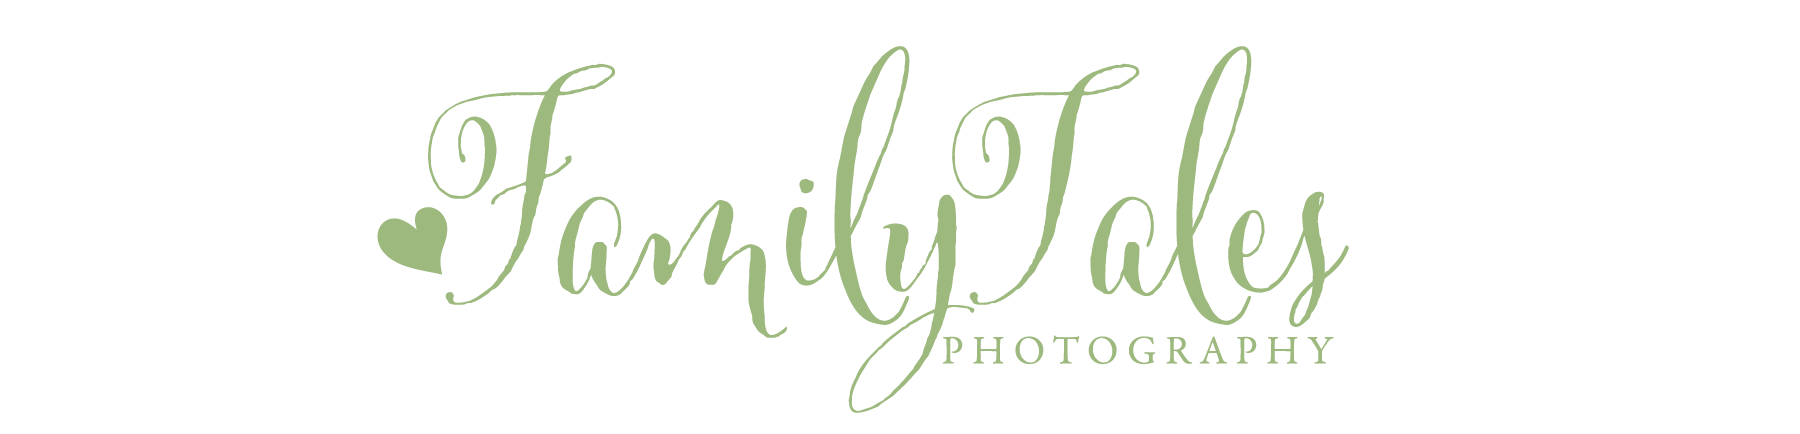 FamilyTales Photography LLC